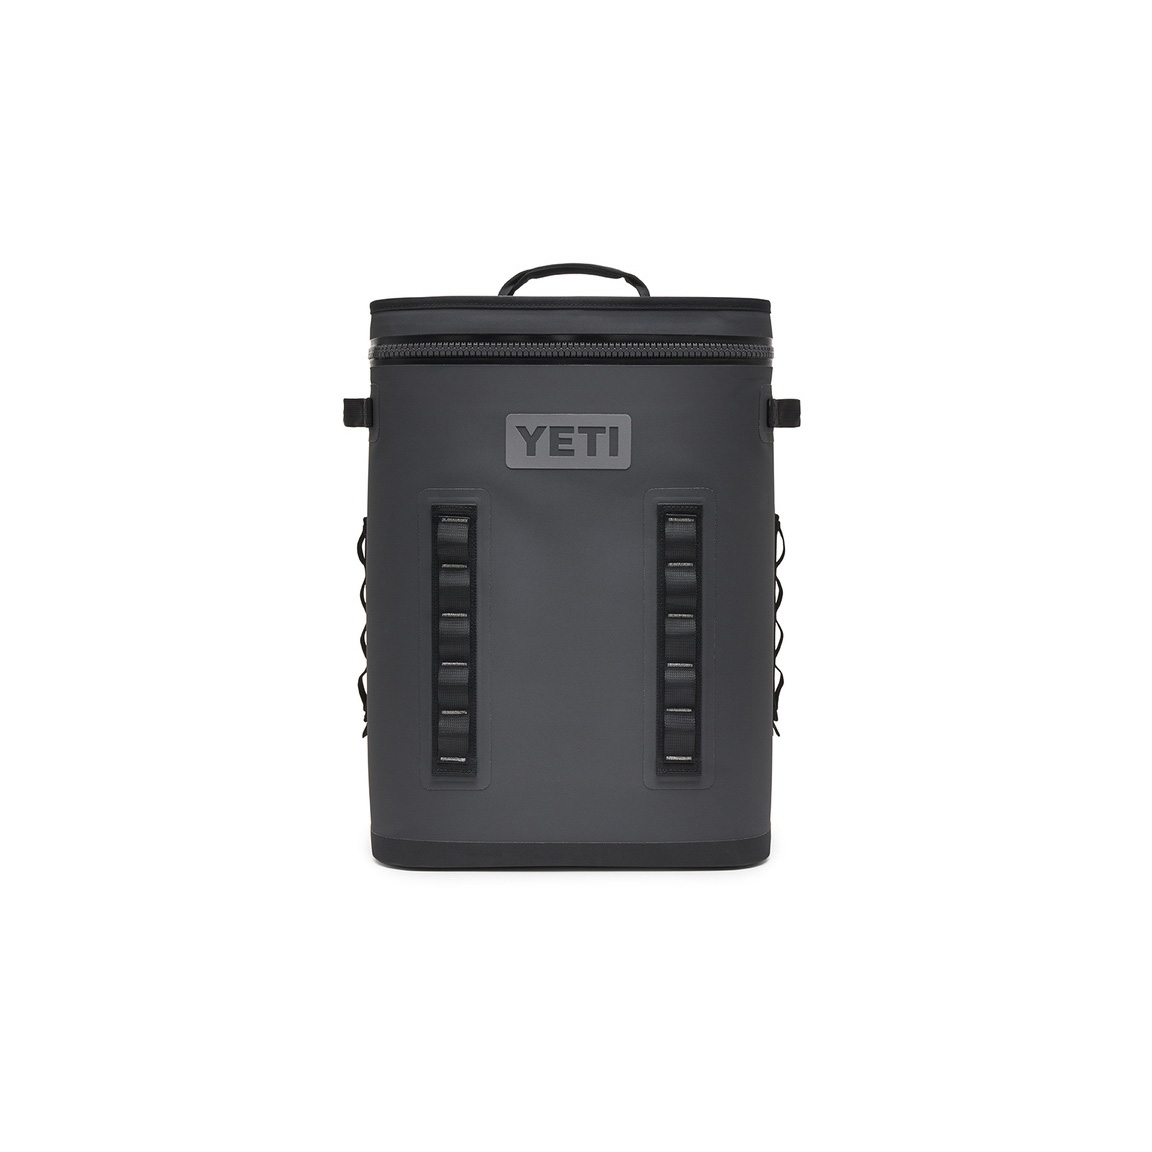 Picture of YETI 18050125000 Backpack Cooler, 20 Cans Capacity, Charcoal